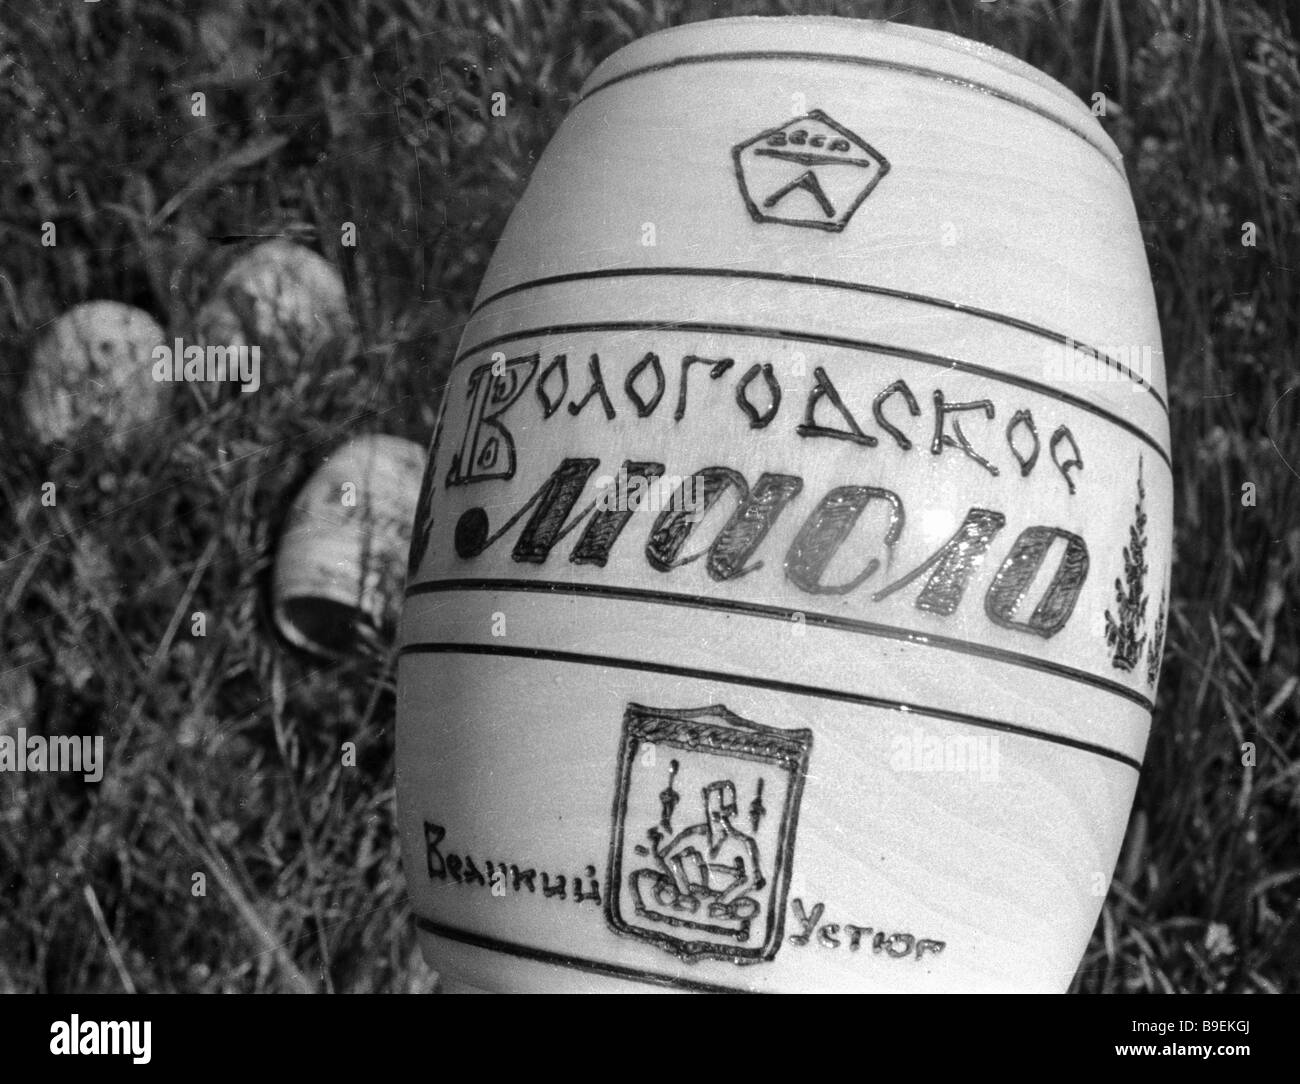 A 1 kg keg of butter produced at the Shcheksninsky dairy factory - Stock Image